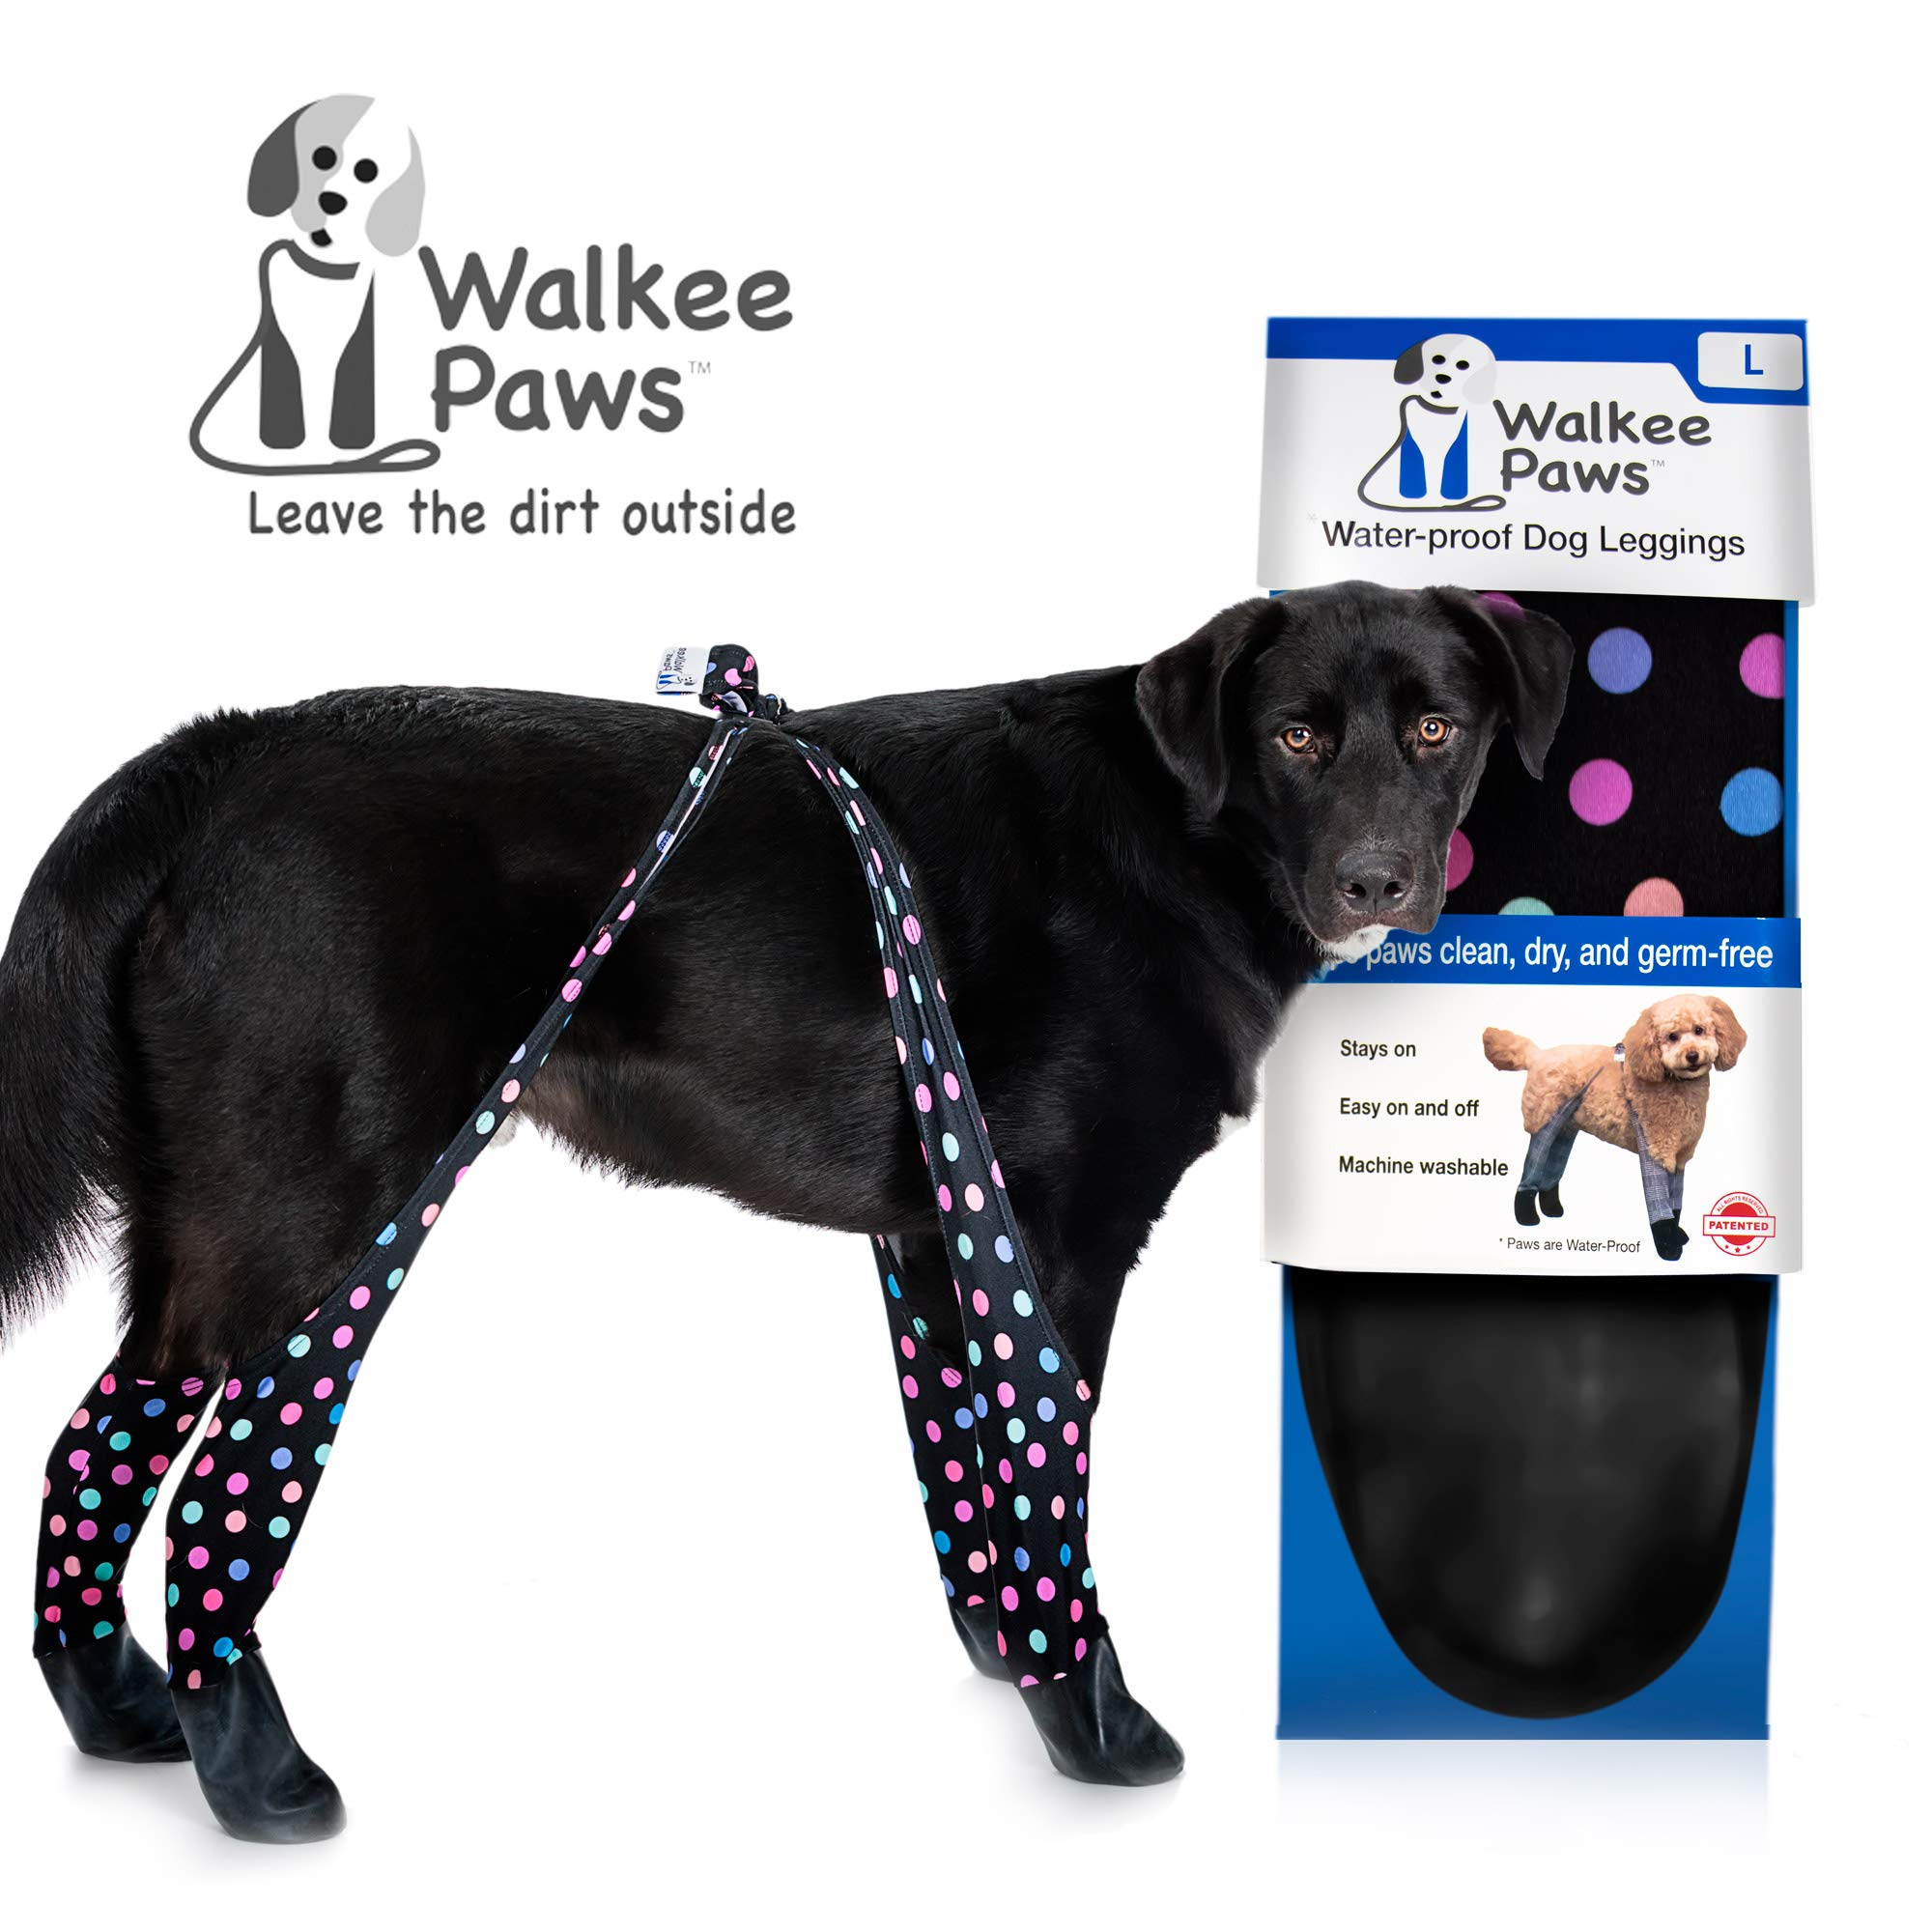 Walkee Paws Waterproof Dog Leggings - Keep Your Dog's Feet Clean and Dry Without The Hassle of Boots - Confetti Color (Large), WPCONL